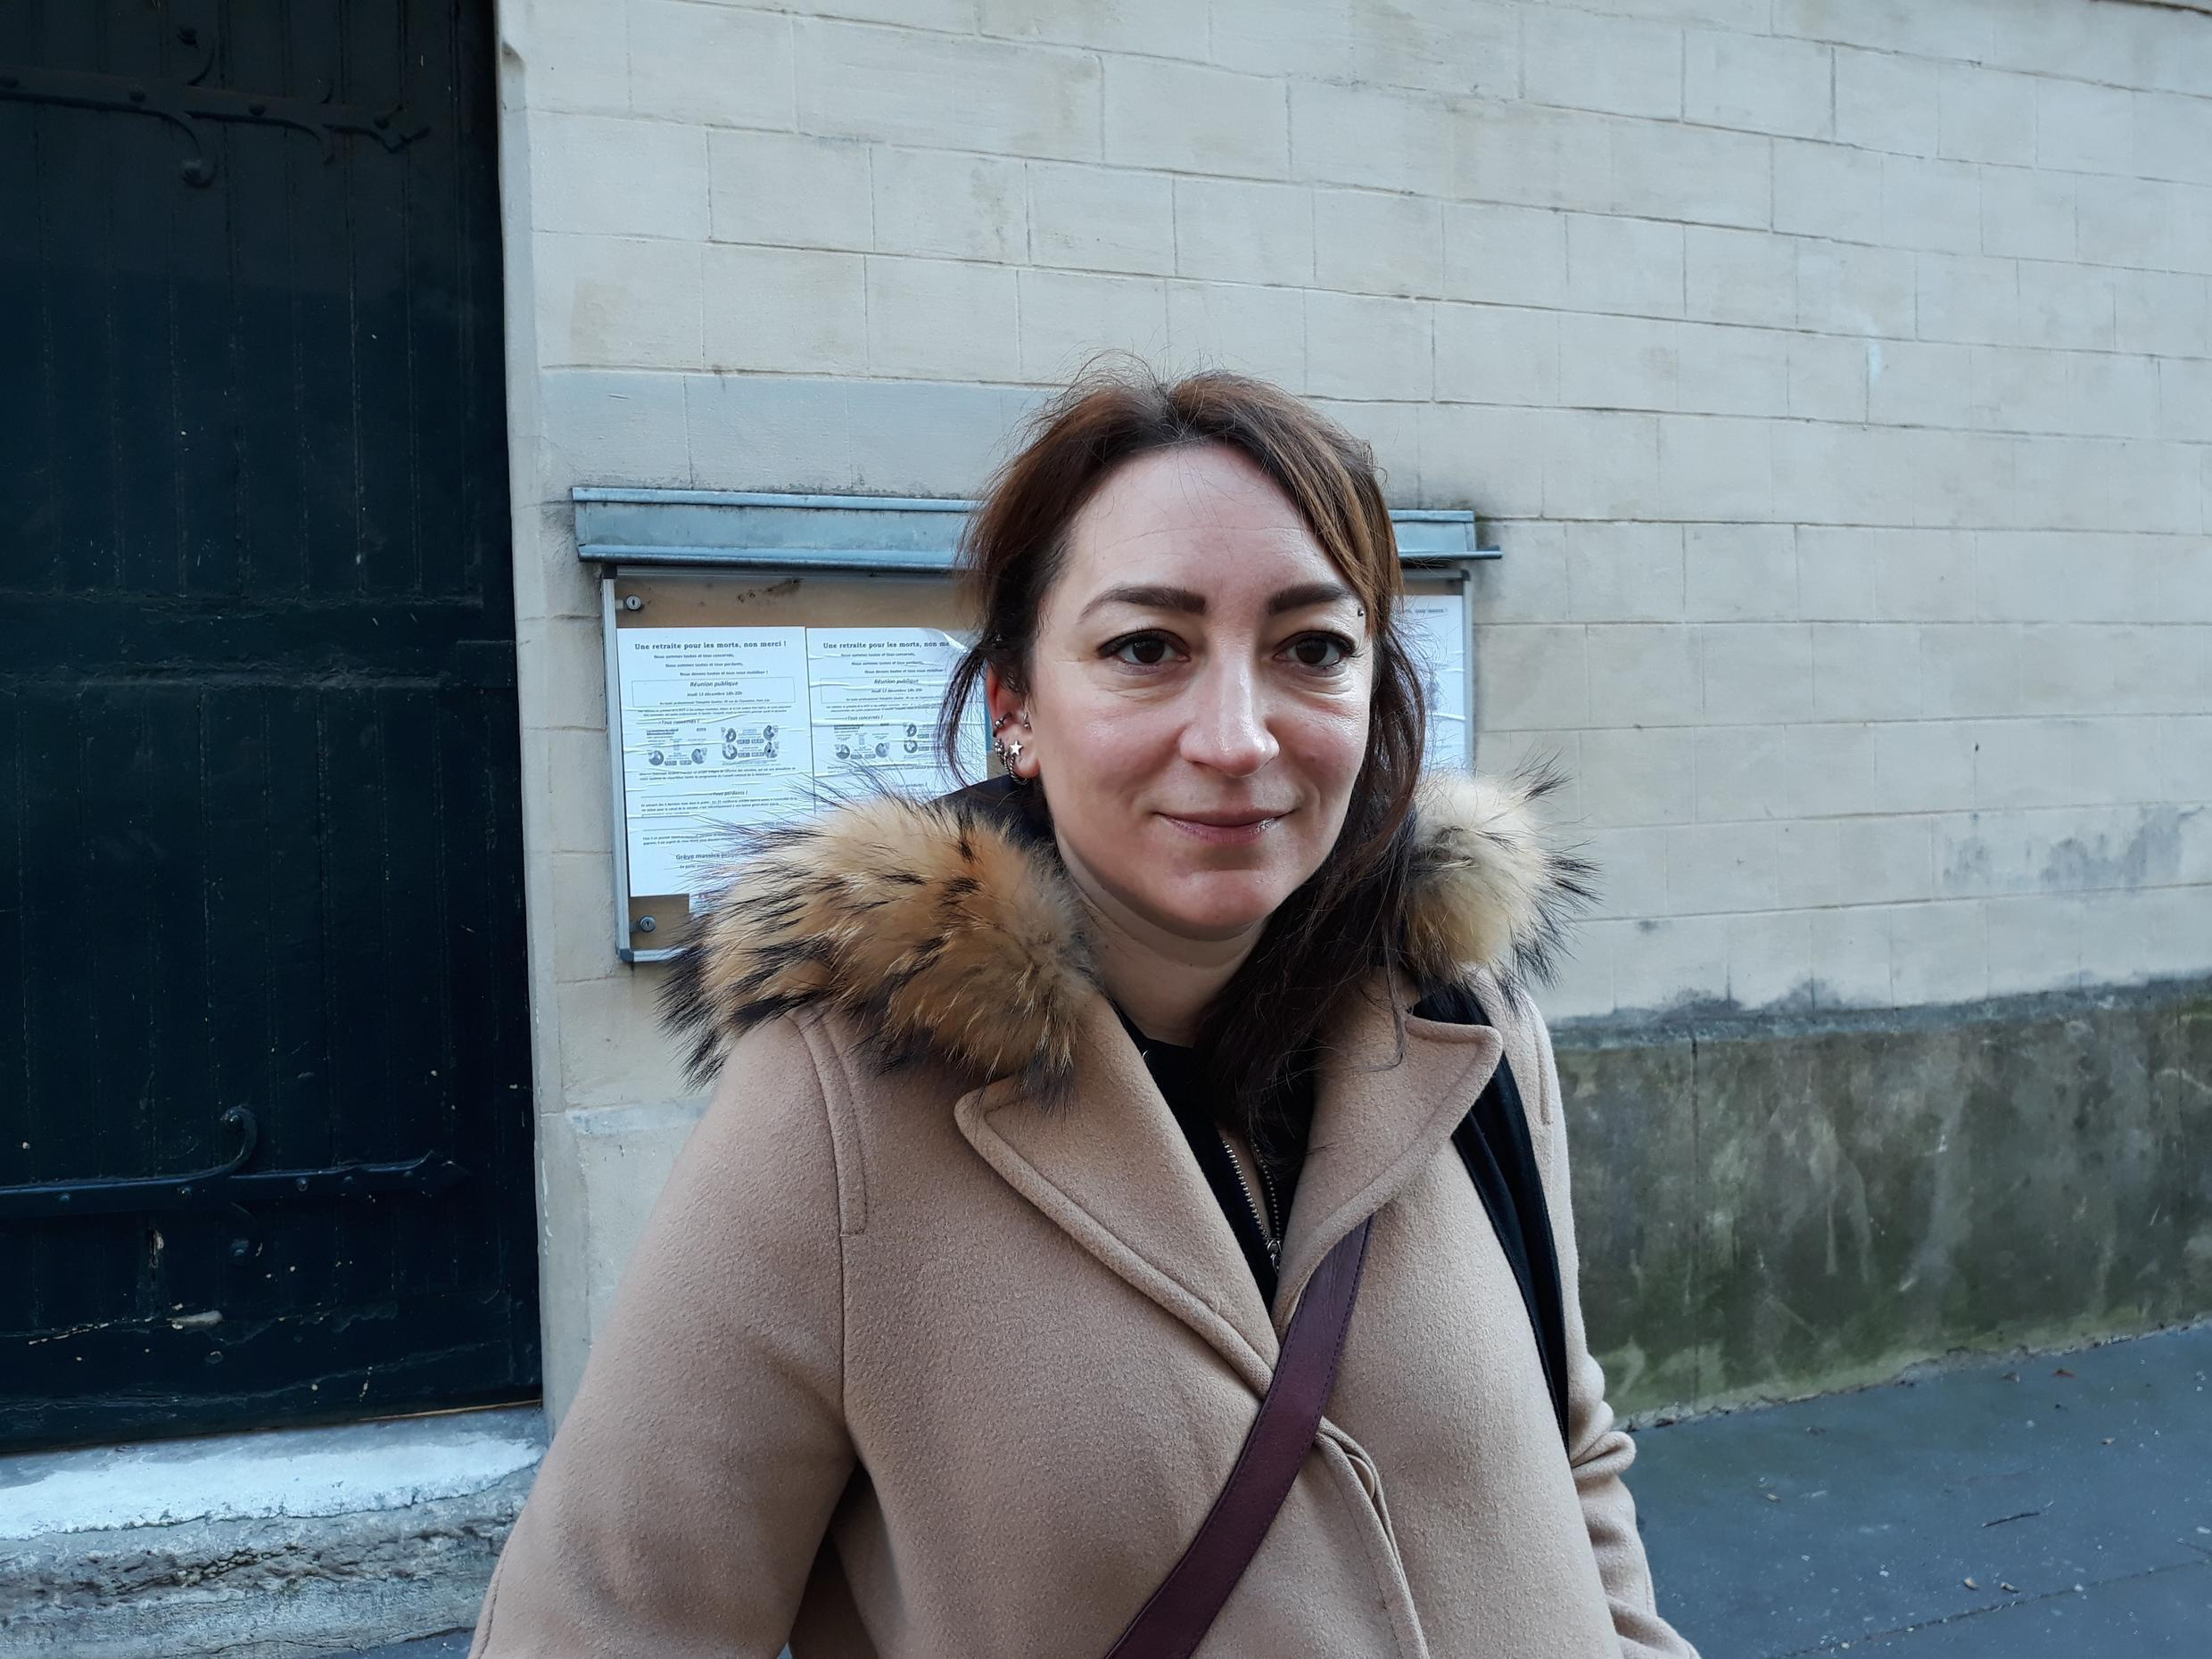 Mother-of-three Solveig is satisfied with Paris Mayor Anne Hidalgo's record.